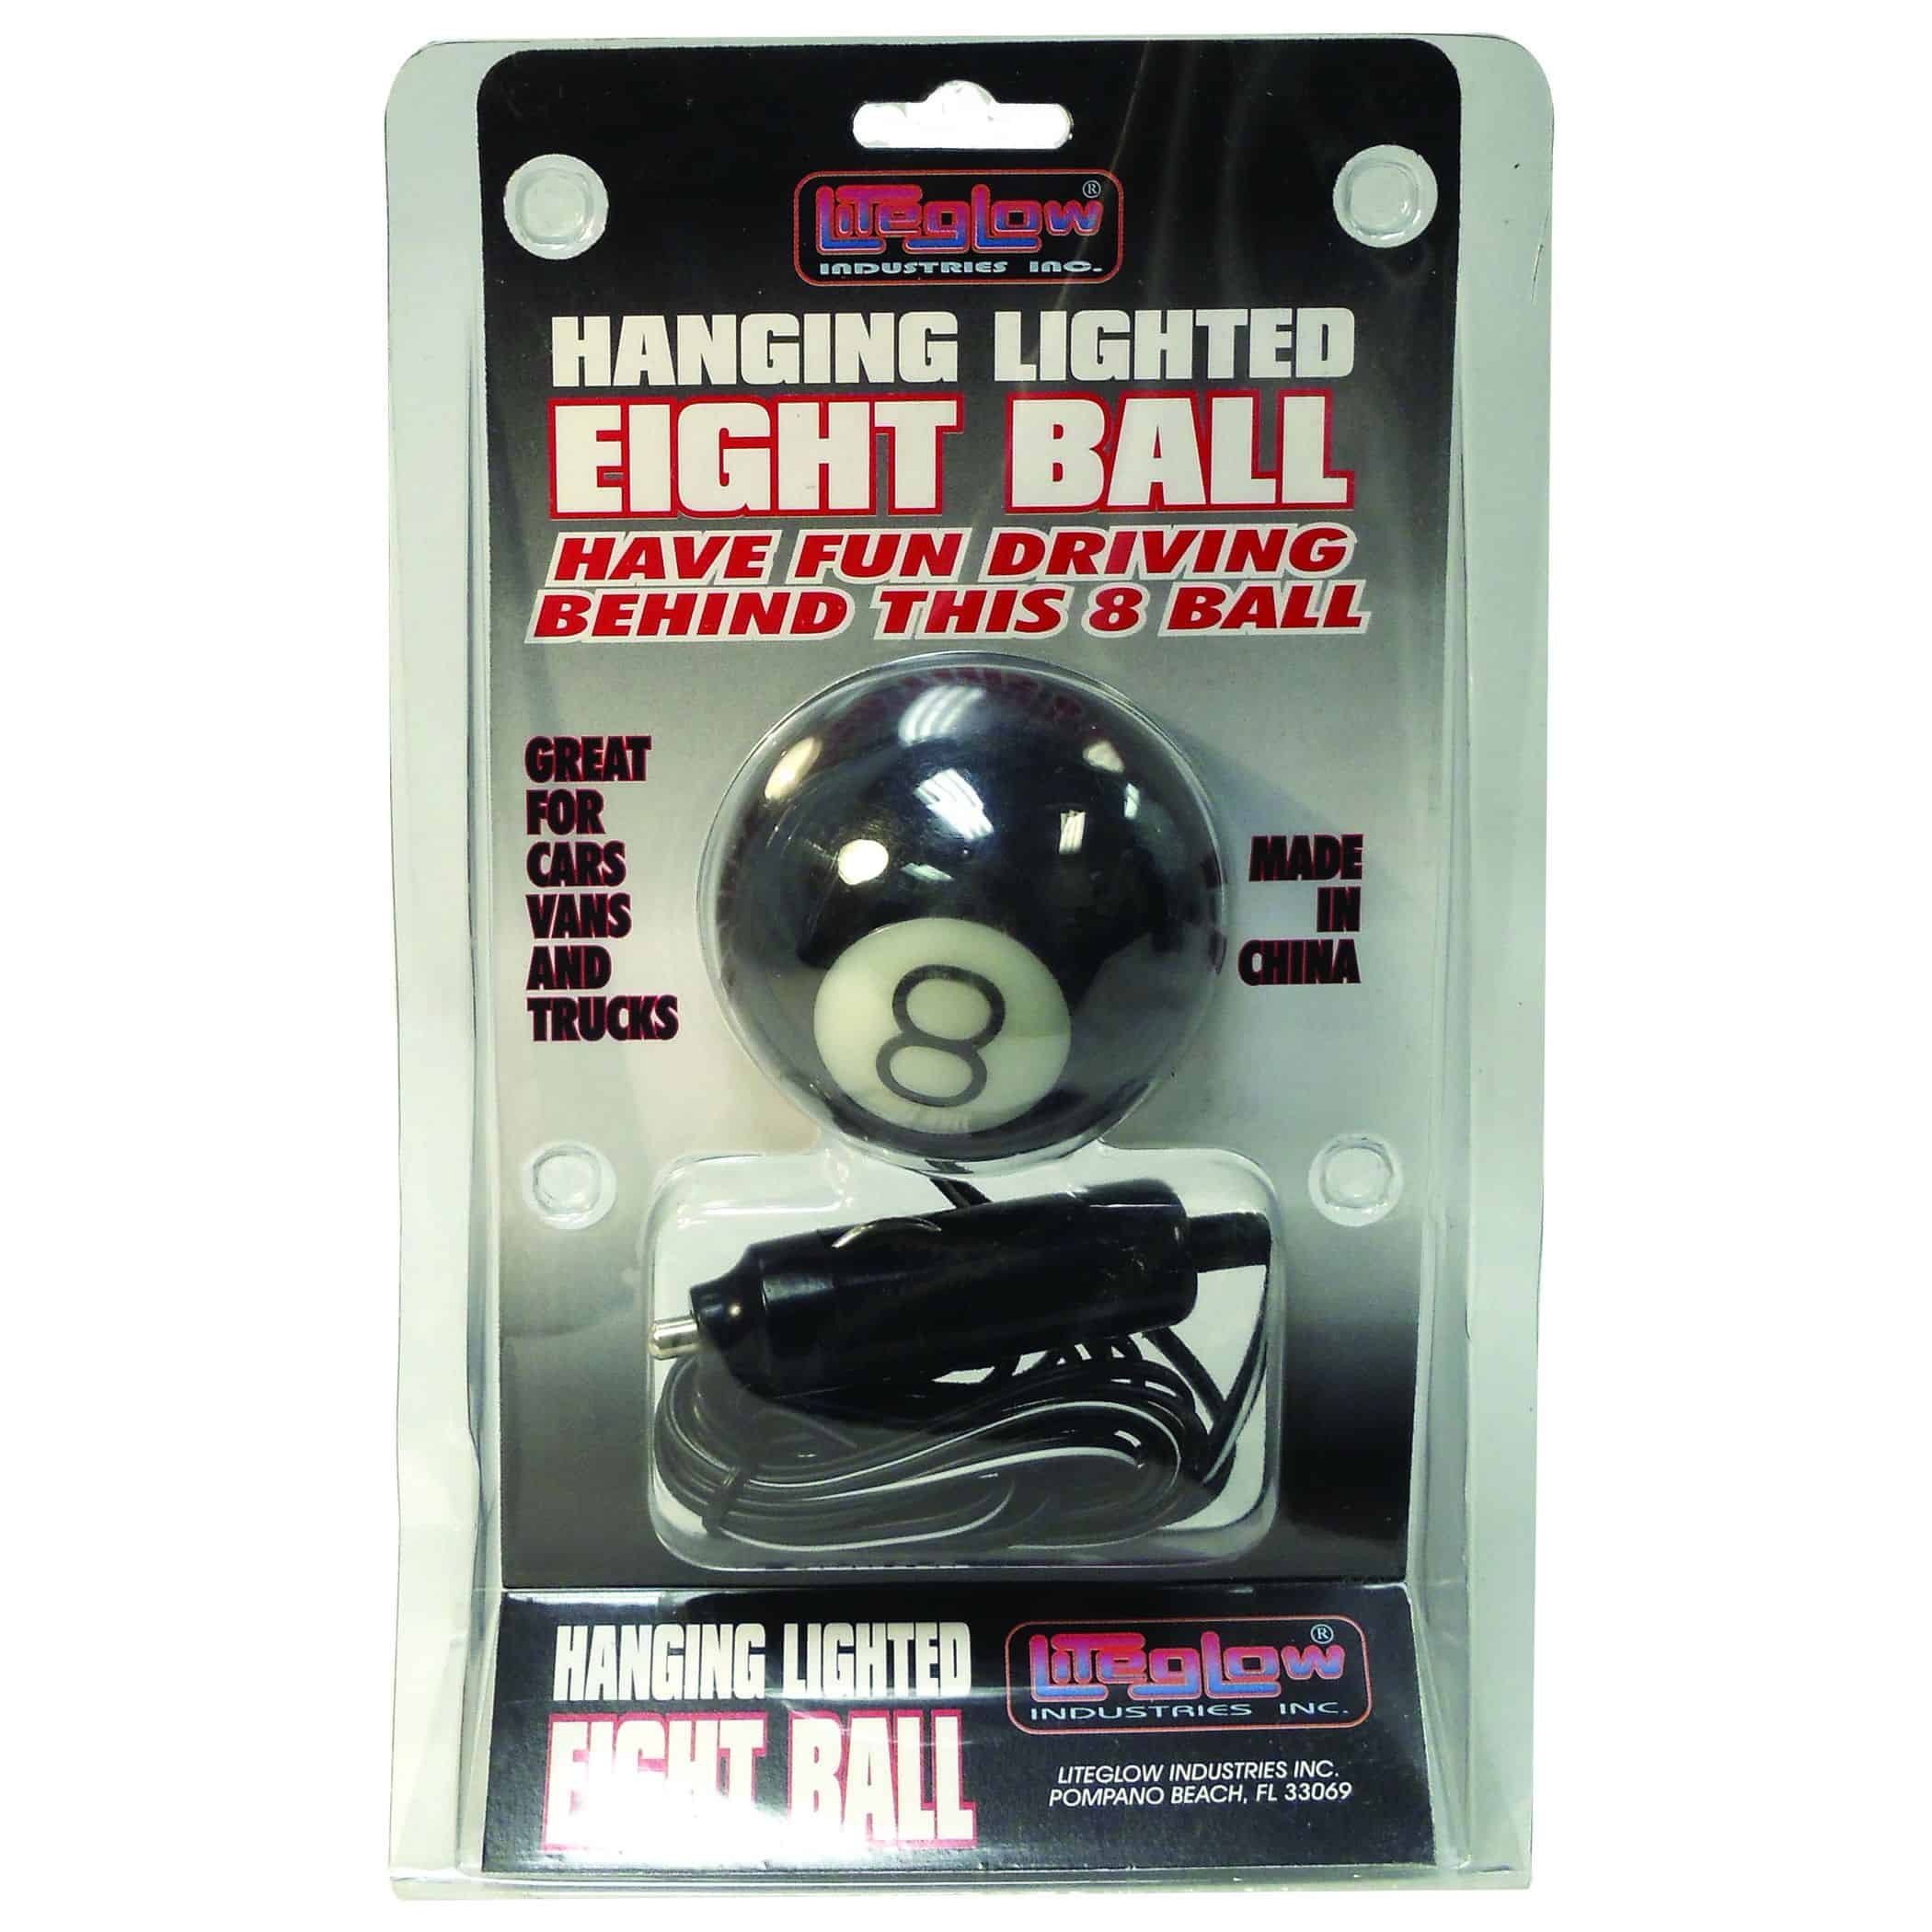 024BLL88 - Hanging Lighted Eight Ball 12V